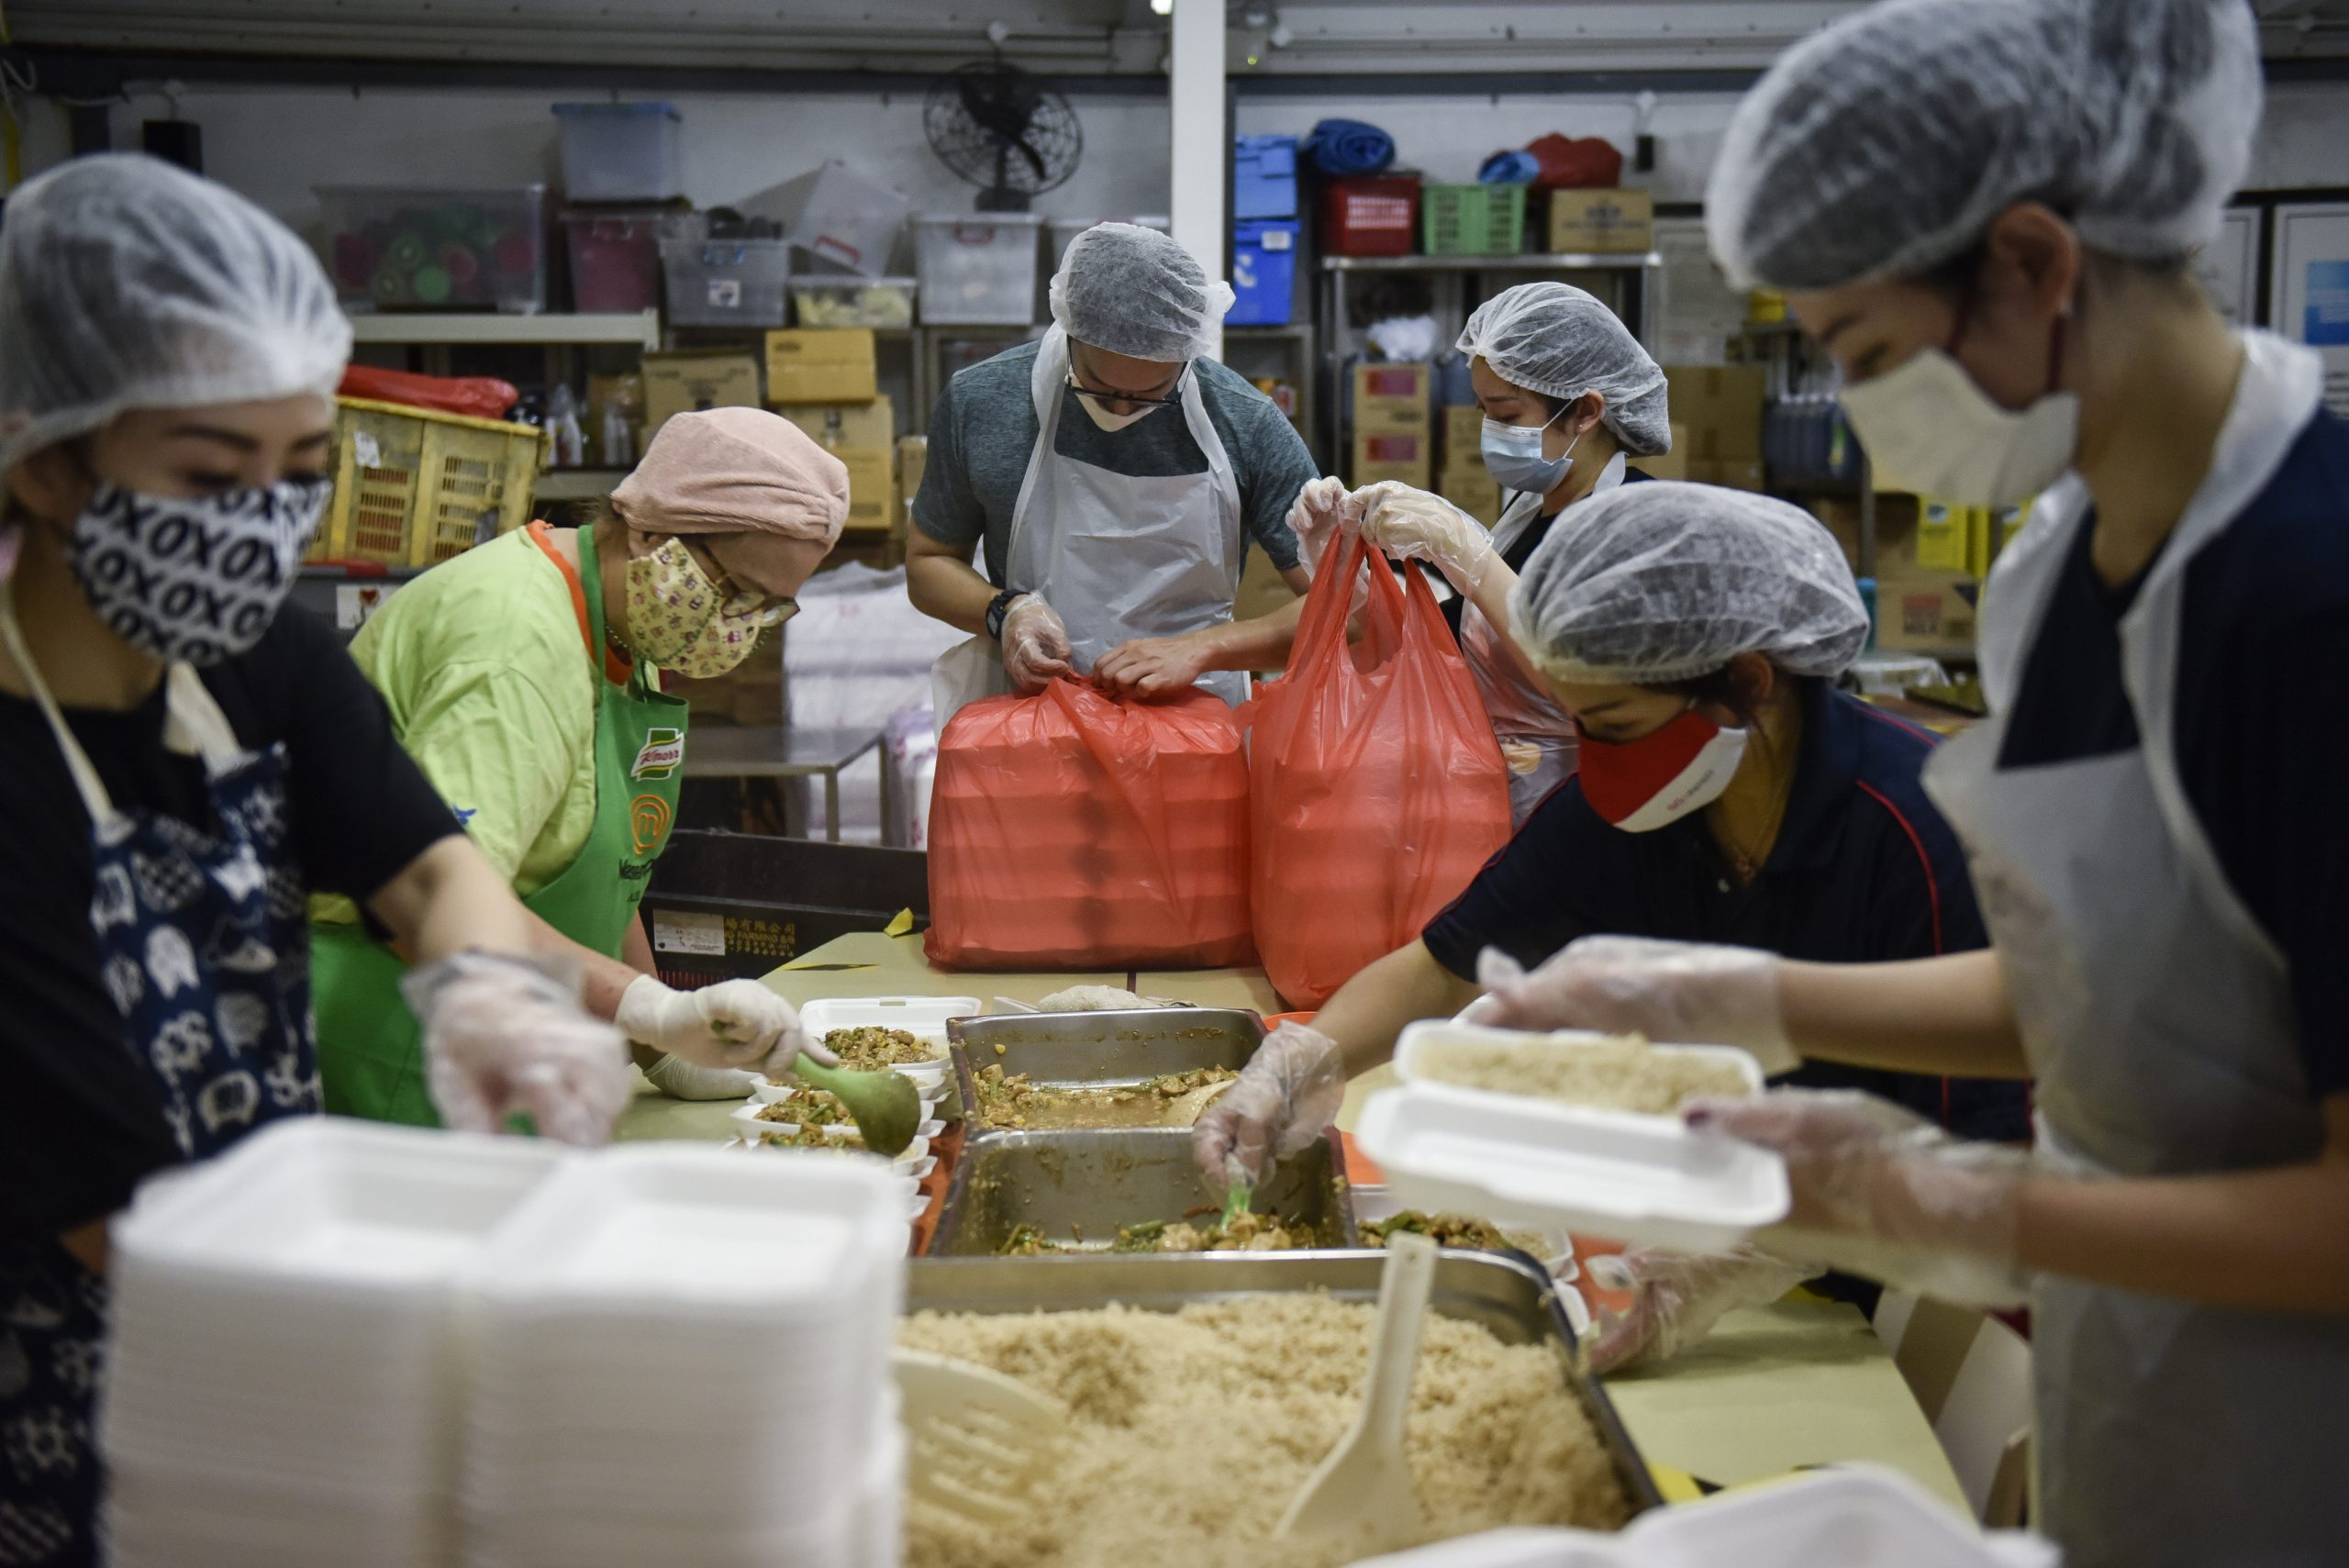 Volunteers packing food have to wear a hairnet, apron and gloves, which are all provided at the kitchen. To give volunteers more flexibility, there are four shifts each day that they can sign-up for online.